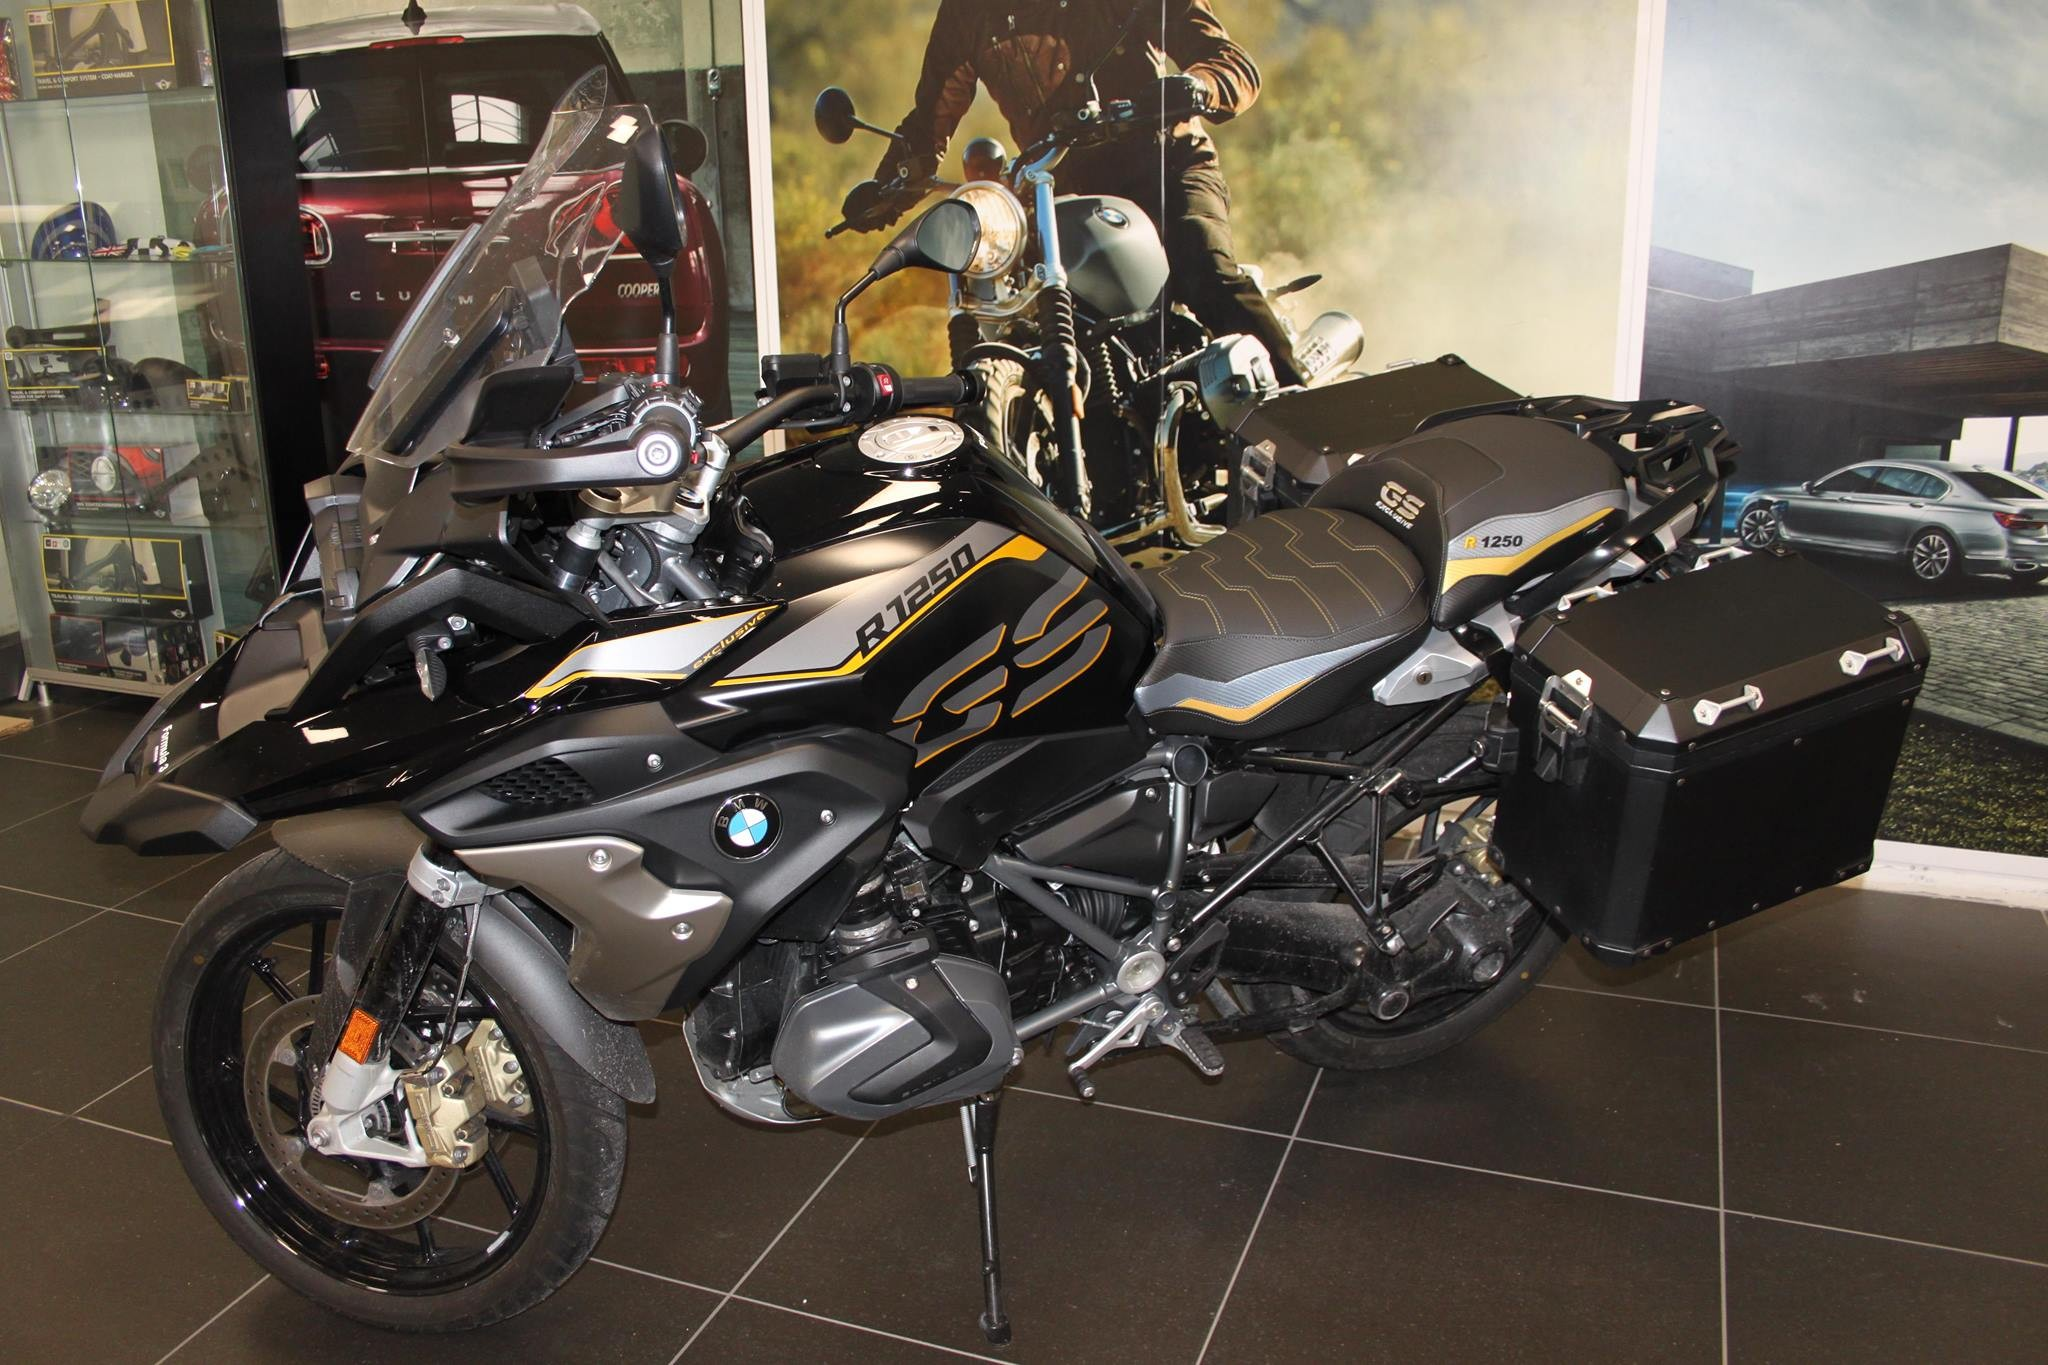 Stupendous Details About Bmw R1250Gs Exclusive 2019 Tappezzeria Italia Comfort Foam Seat Cover New Ocoug Best Dining Table And Chair Ideas Images Ocougorg